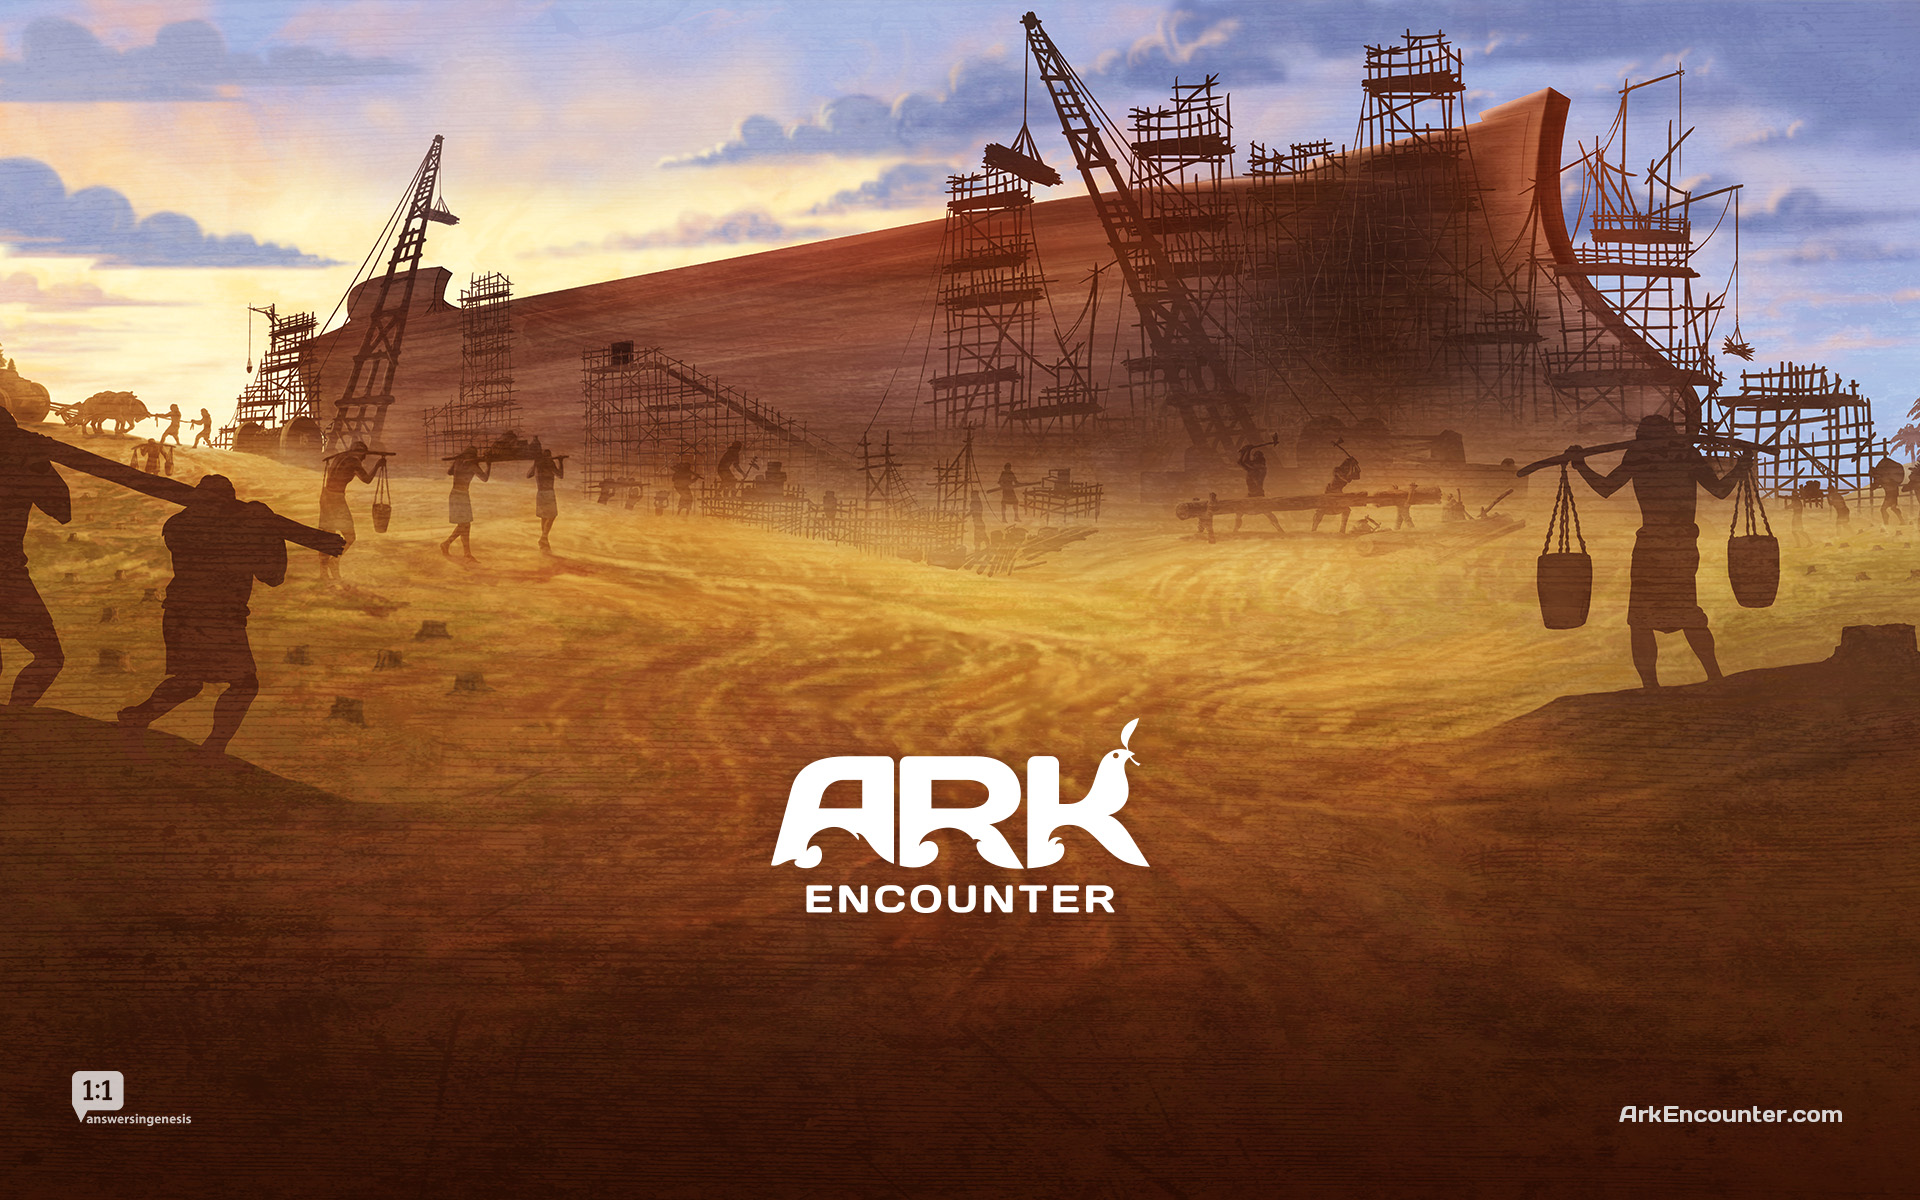 Creationist's Noah's Ark Theme Park Gets $18 Million Tax Break, Won't Hire Gays, Atheists